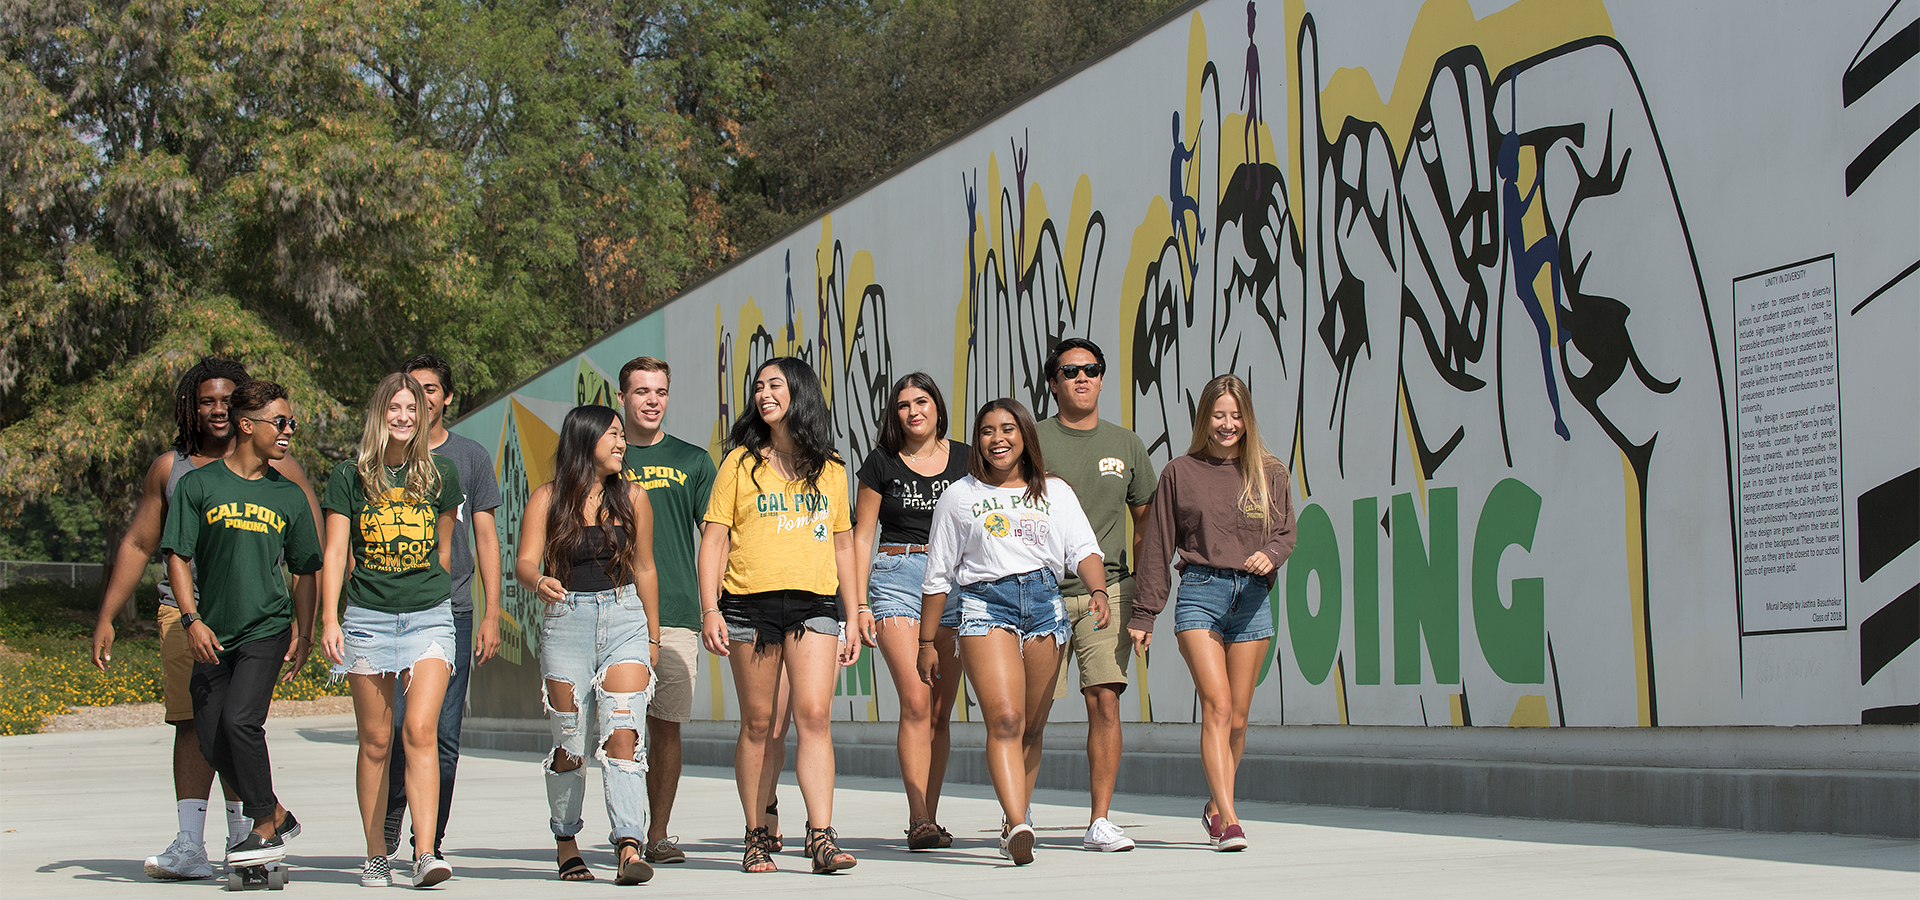 Students walking in front of the Parking Structure II Mural